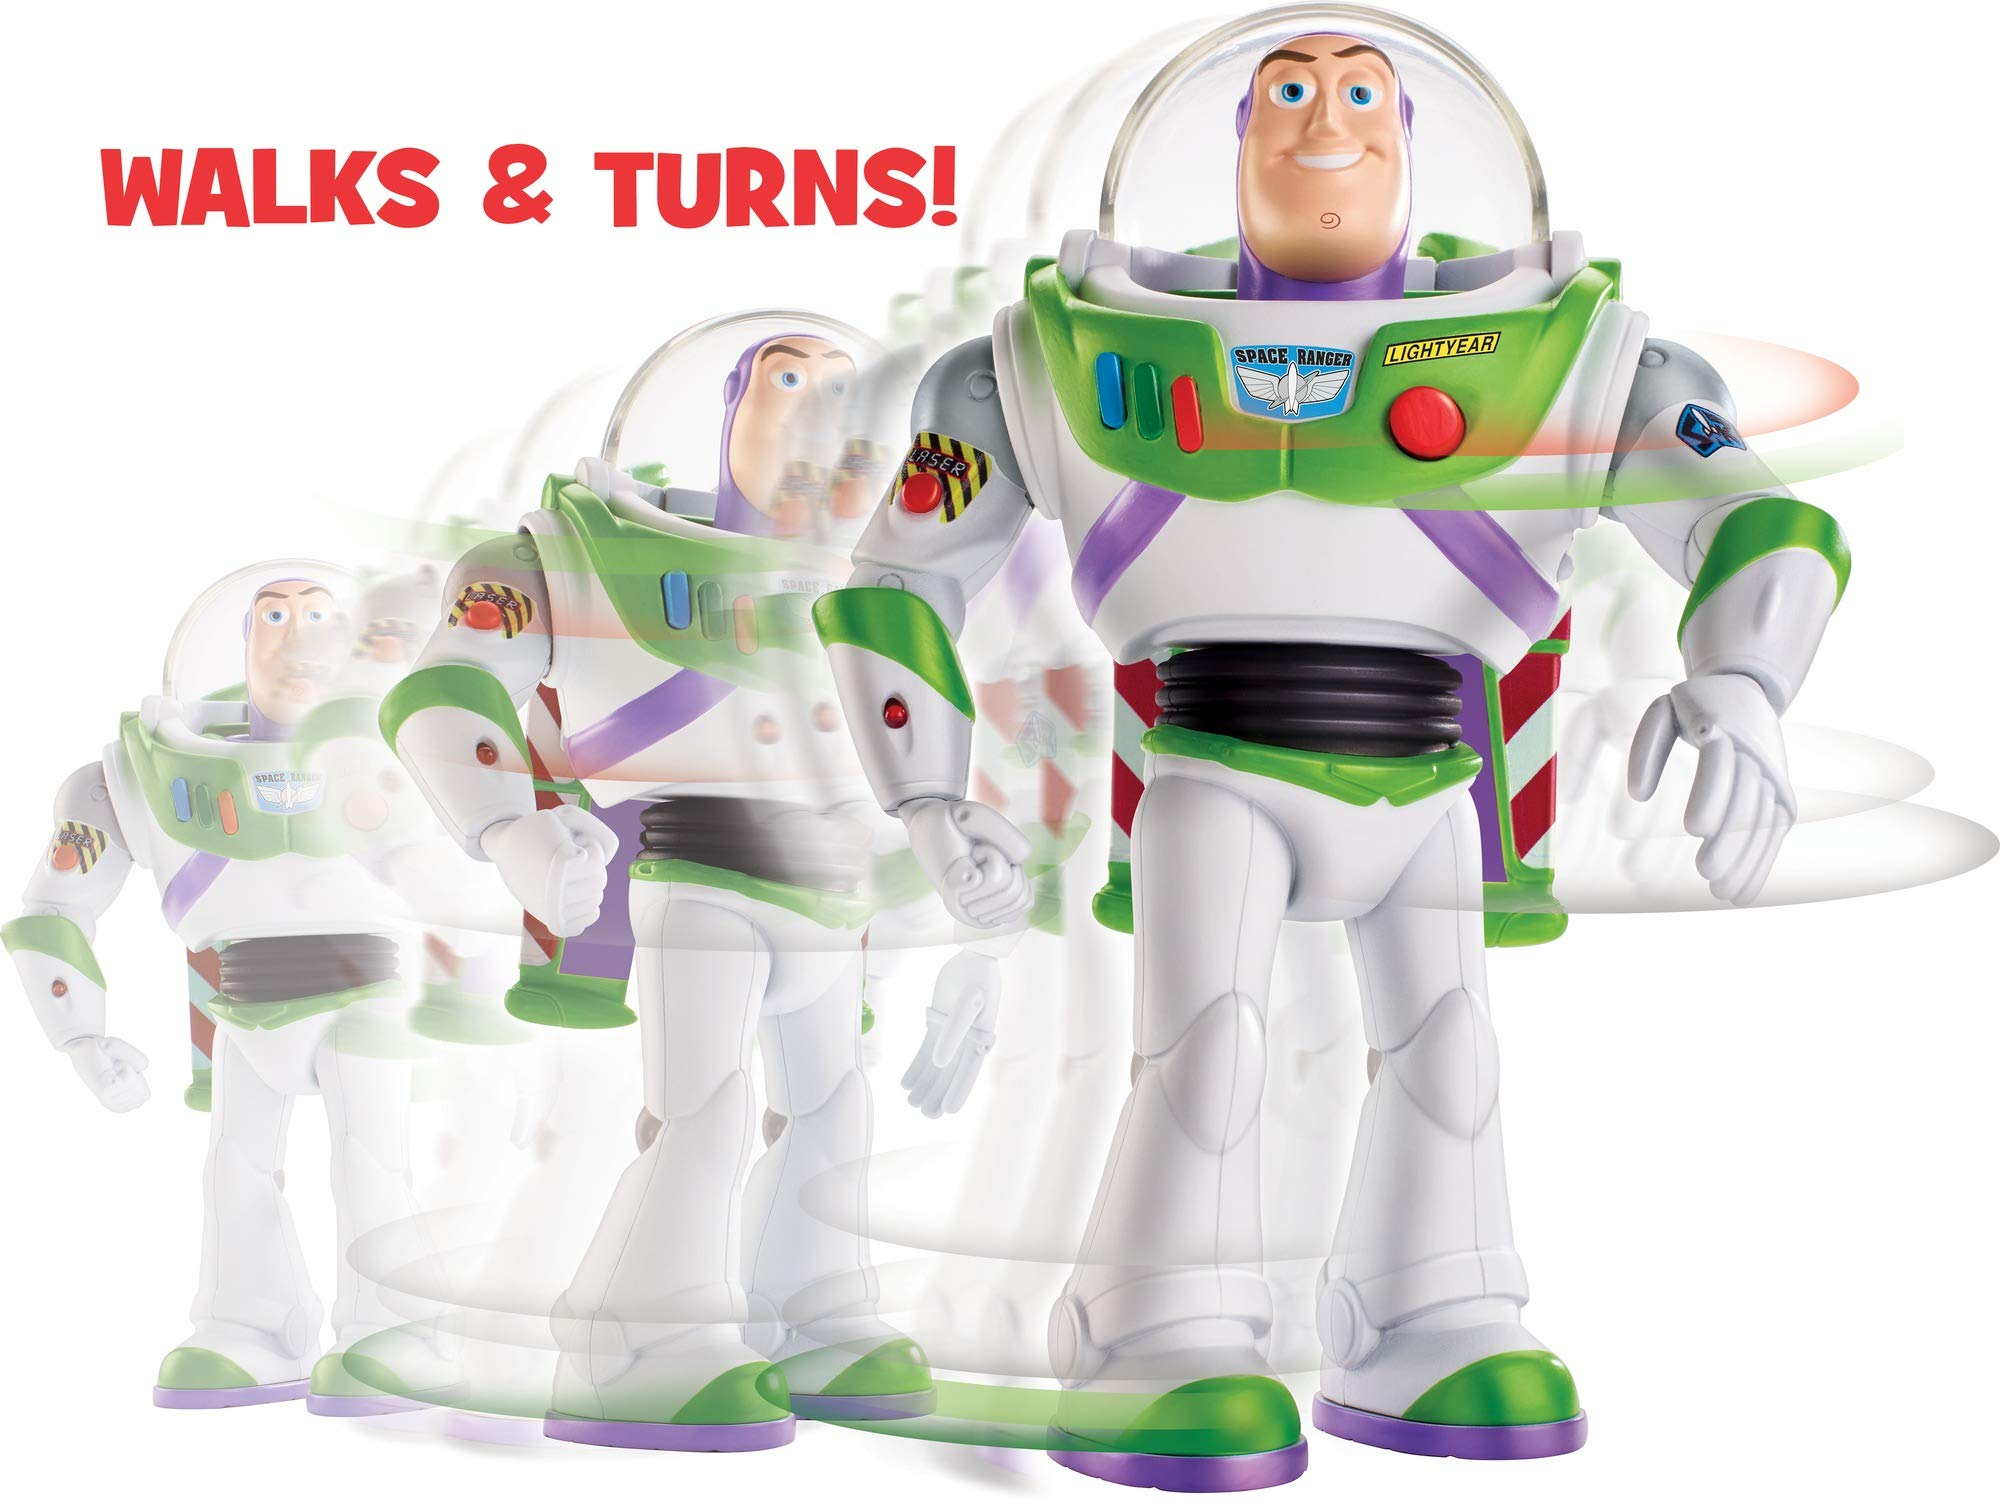 Disney Pixar Toy Story Ultimate Walking Buzz Lightyear, 7'' by Toy Story (Image #5)